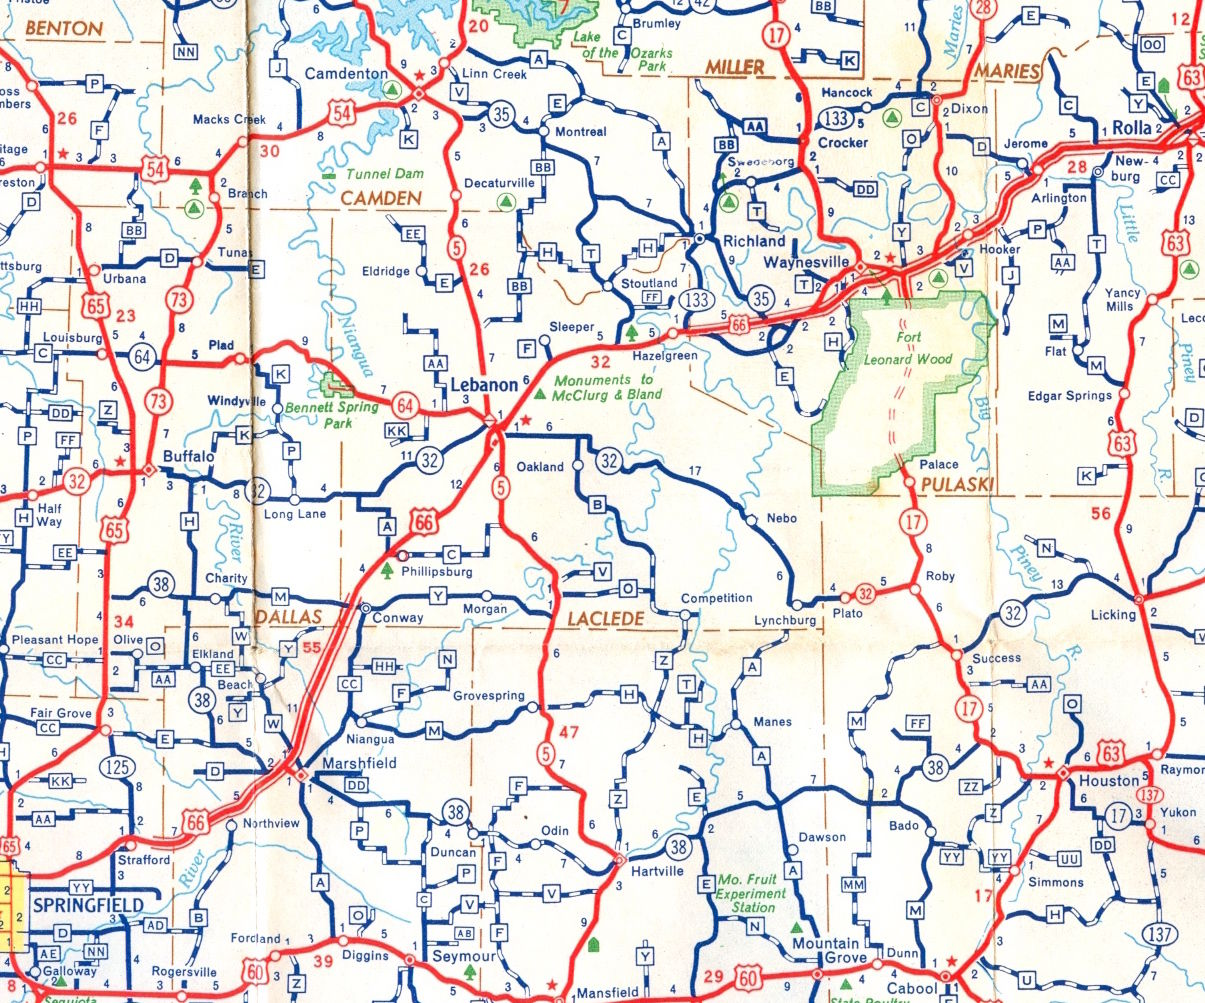 1956 map was last with twolane 66 in Laclede County Maps